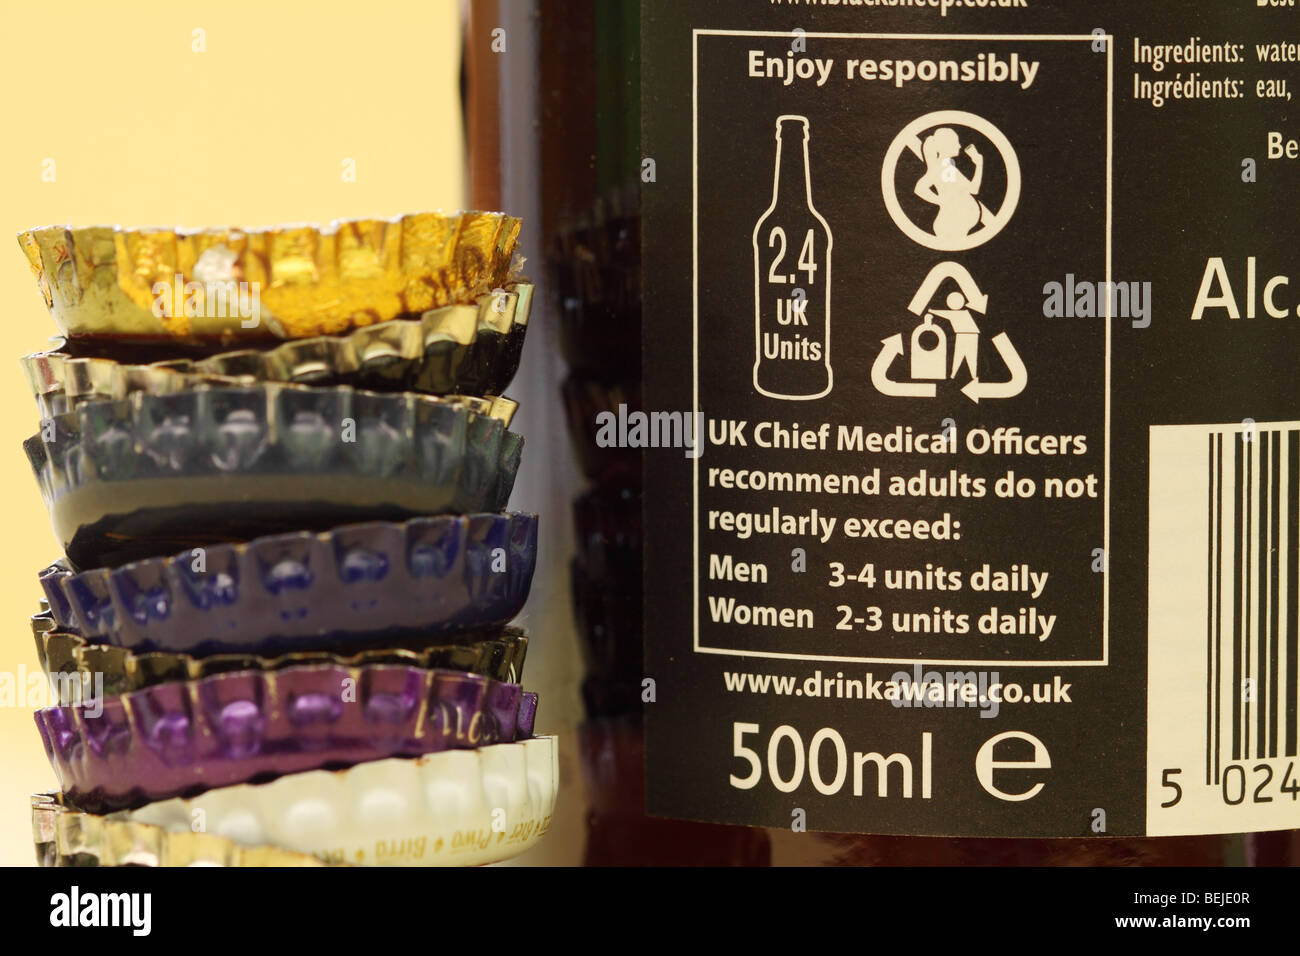 Drinkaware alcohol consumption health warning notice on beer bottle in UK encouraging responsible drinking - Stock Image